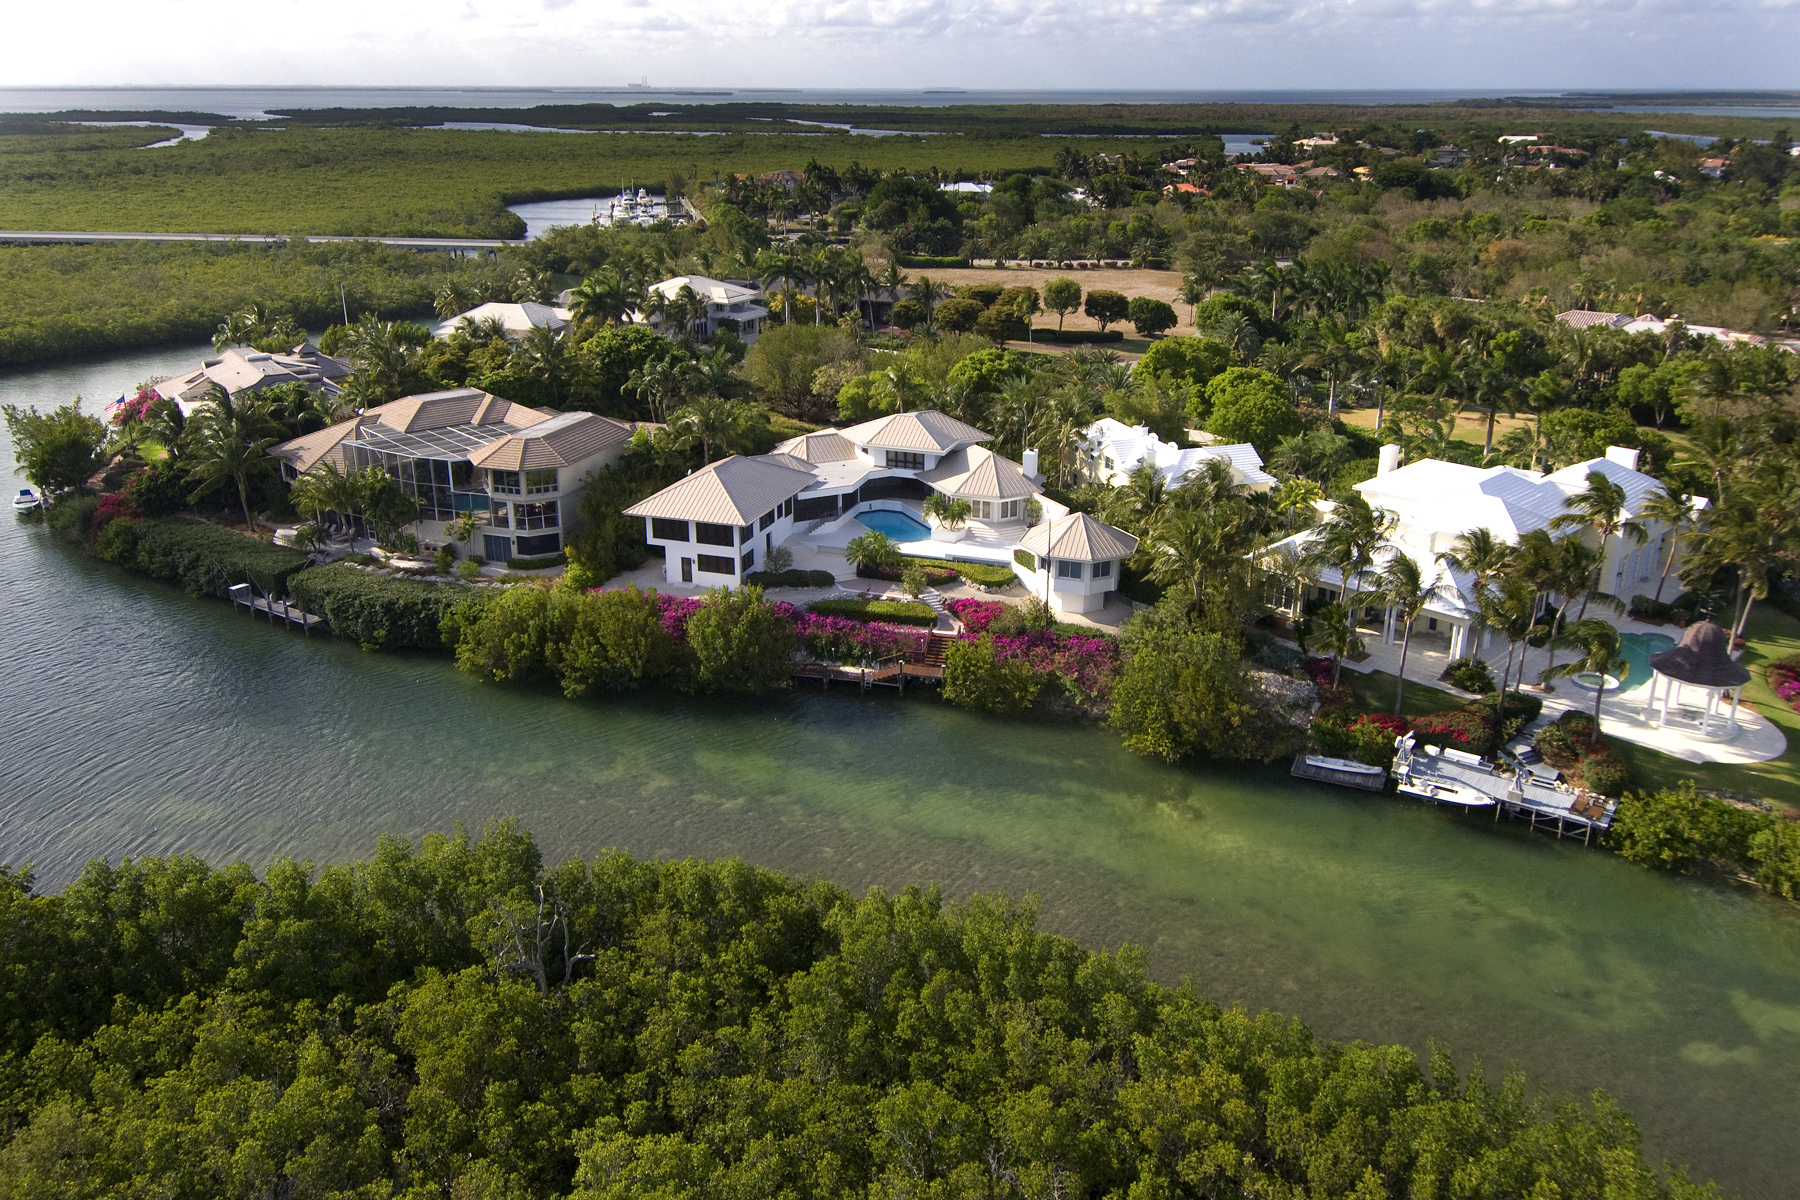 Single Family Home for Sale at Ocean Views from Ocean Reef Home 9 Osprey Lane Ocean Reef Community, Key Largo, Florida, 33037 United States